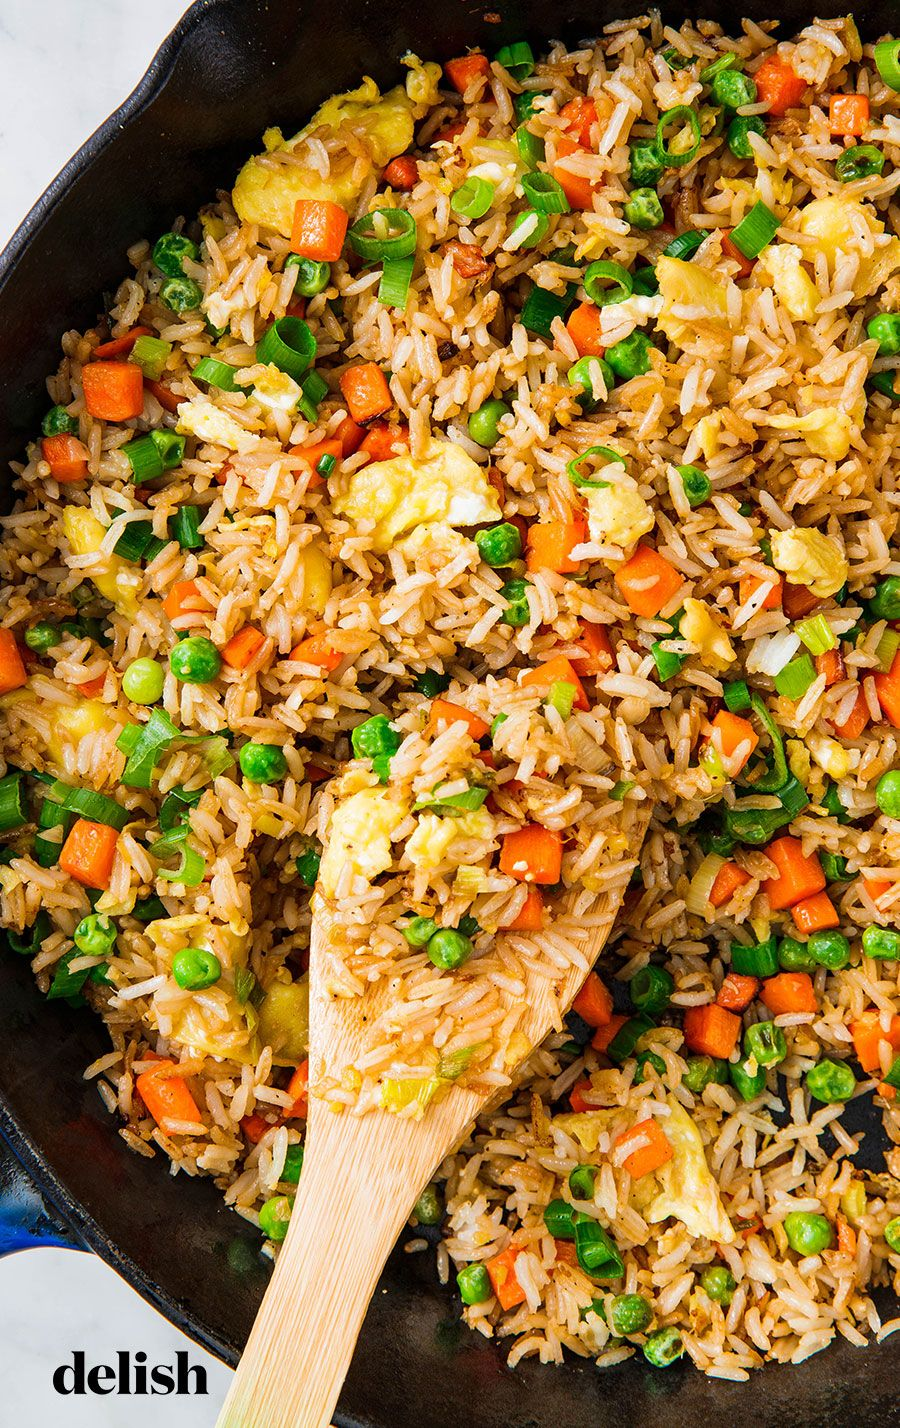 How To Make Take-Out Fried Rice images